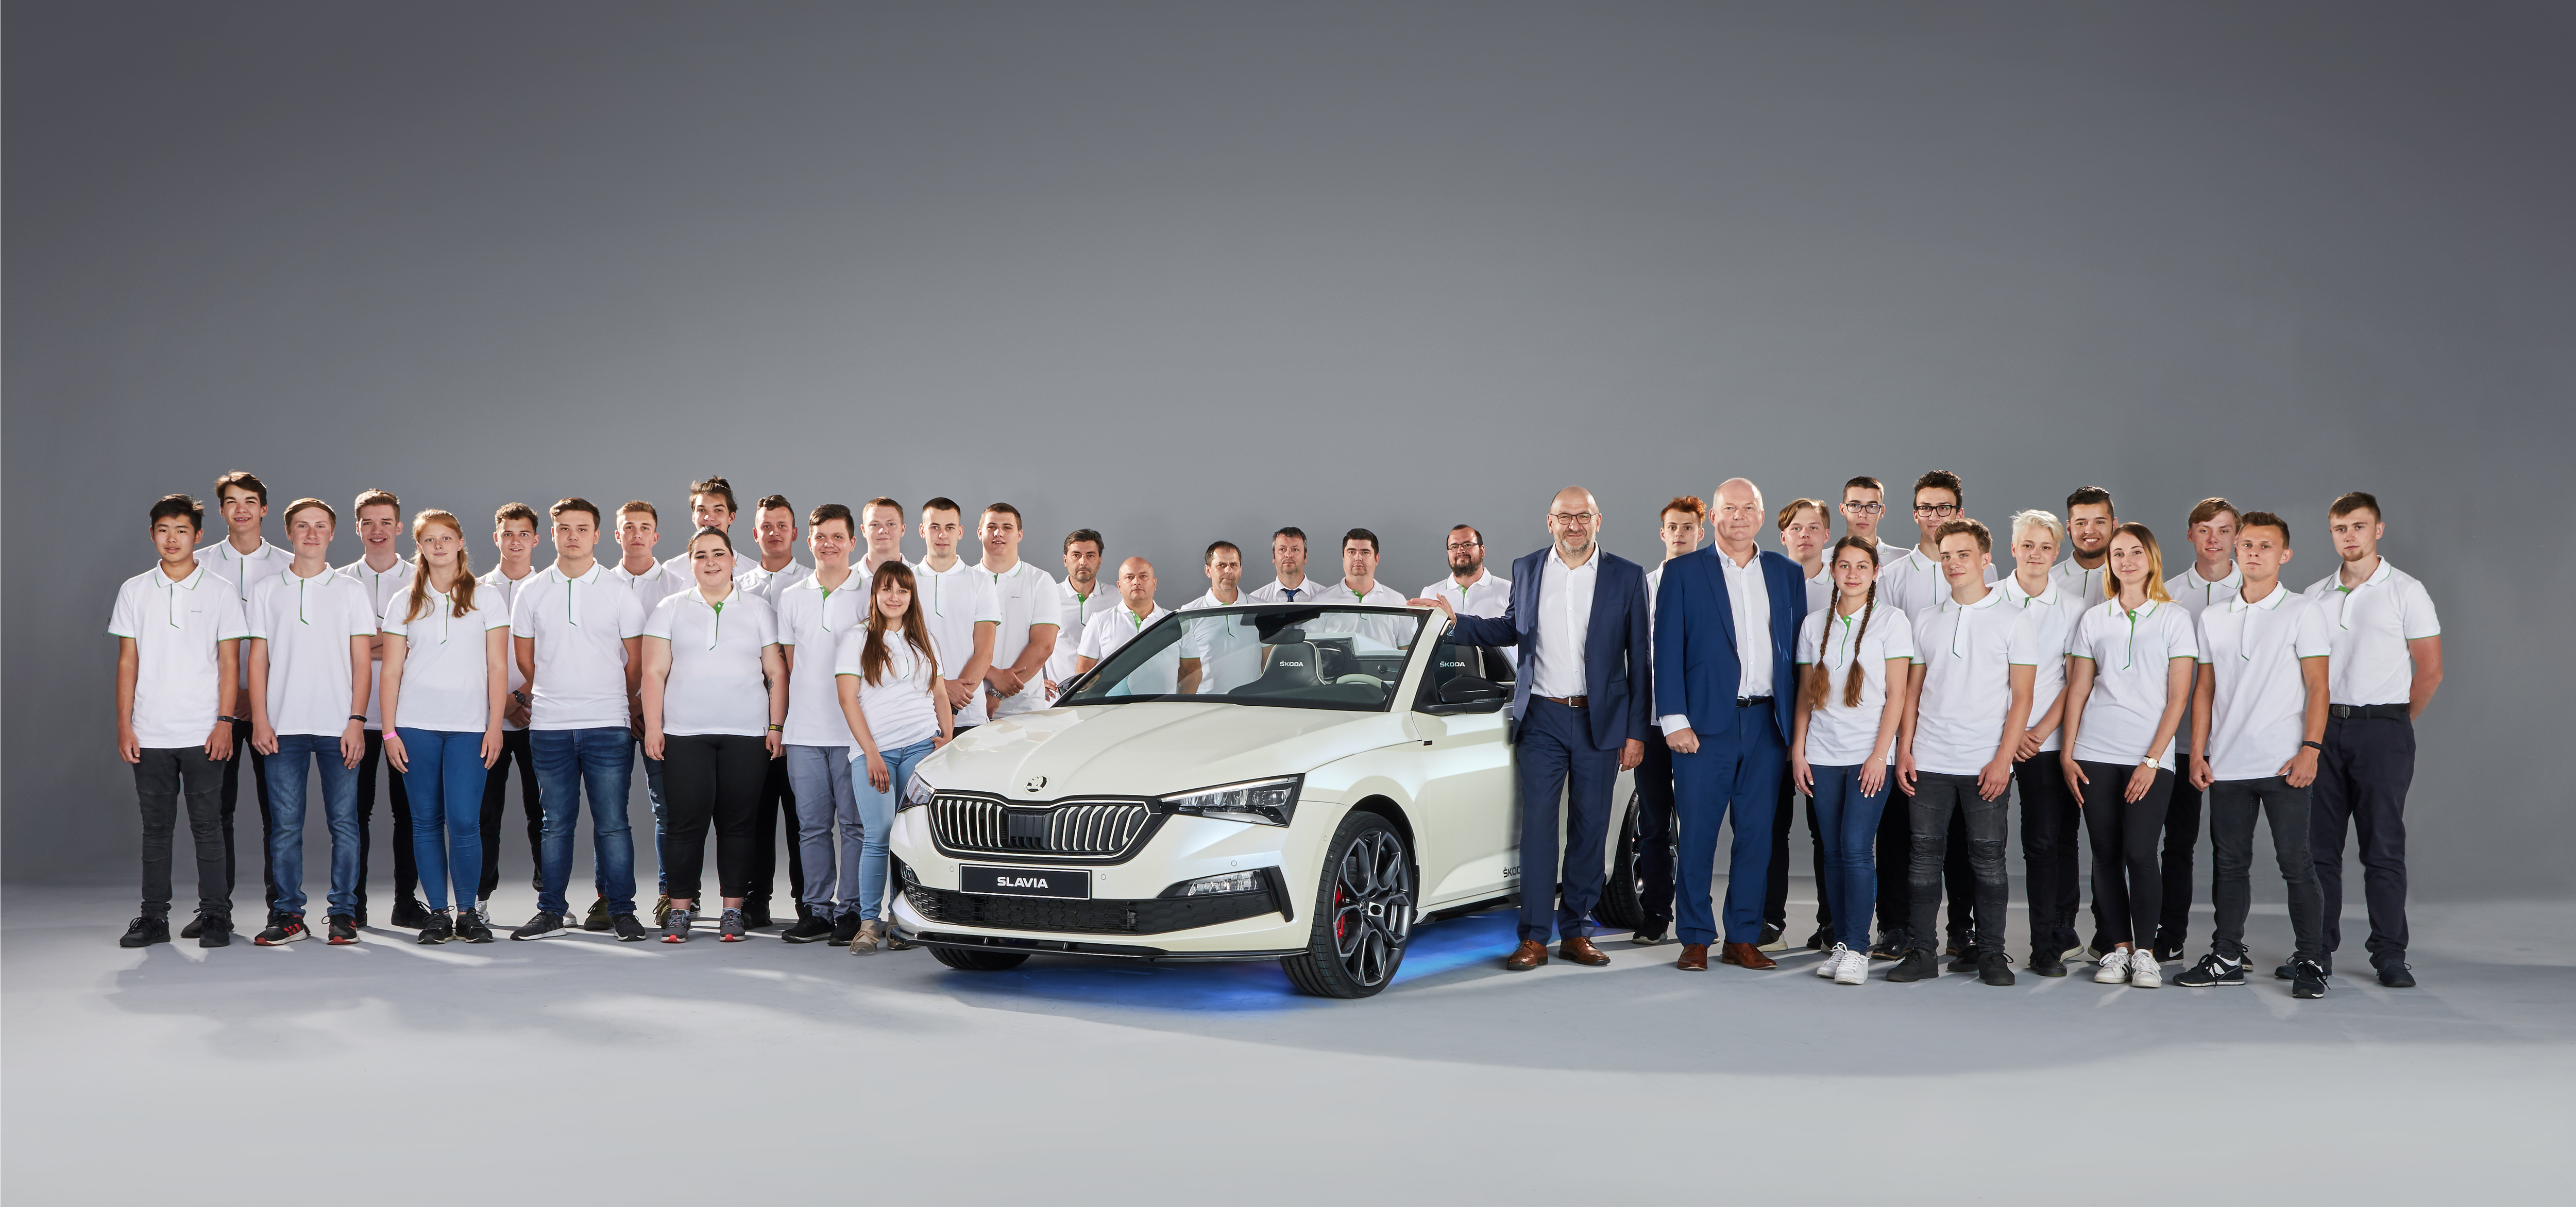 Project launch for the eighth SKODA student car - Image 2